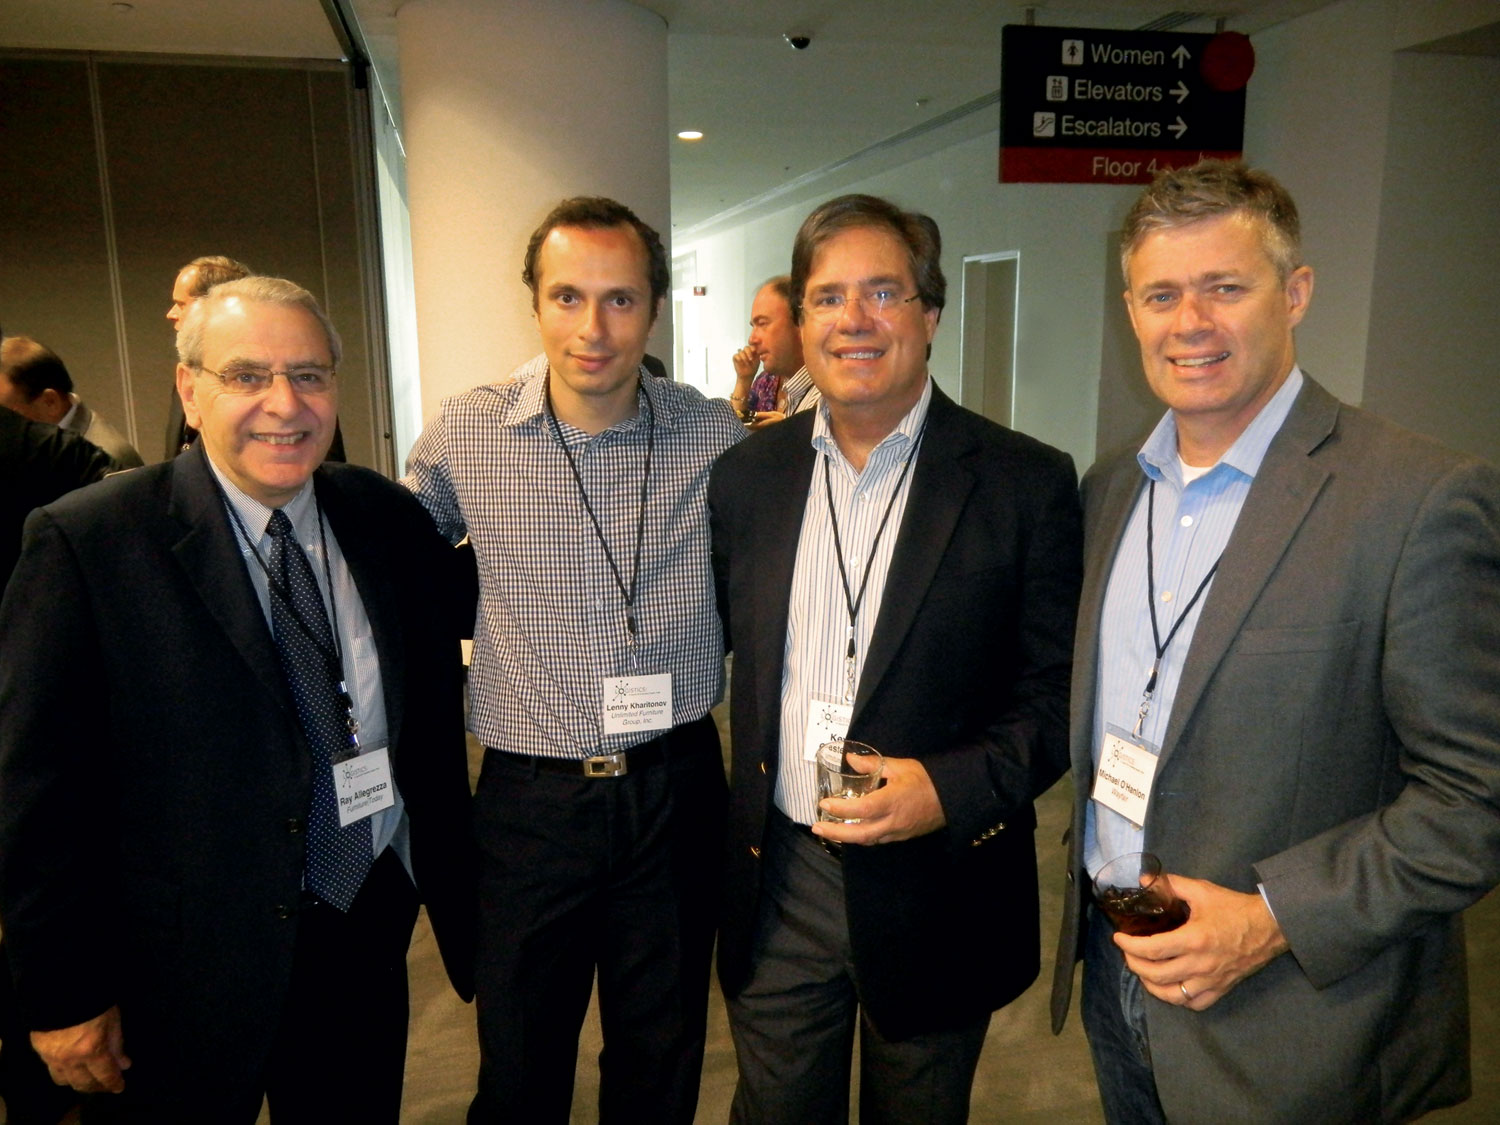 Ray Allegrezza, left, Furniture Today; Lenny Kharitonov, Unlimited Furniture Group, New York; Kevin Castellani, Furniture Today; Mike O'Hanlon, Wayfair, Boston.